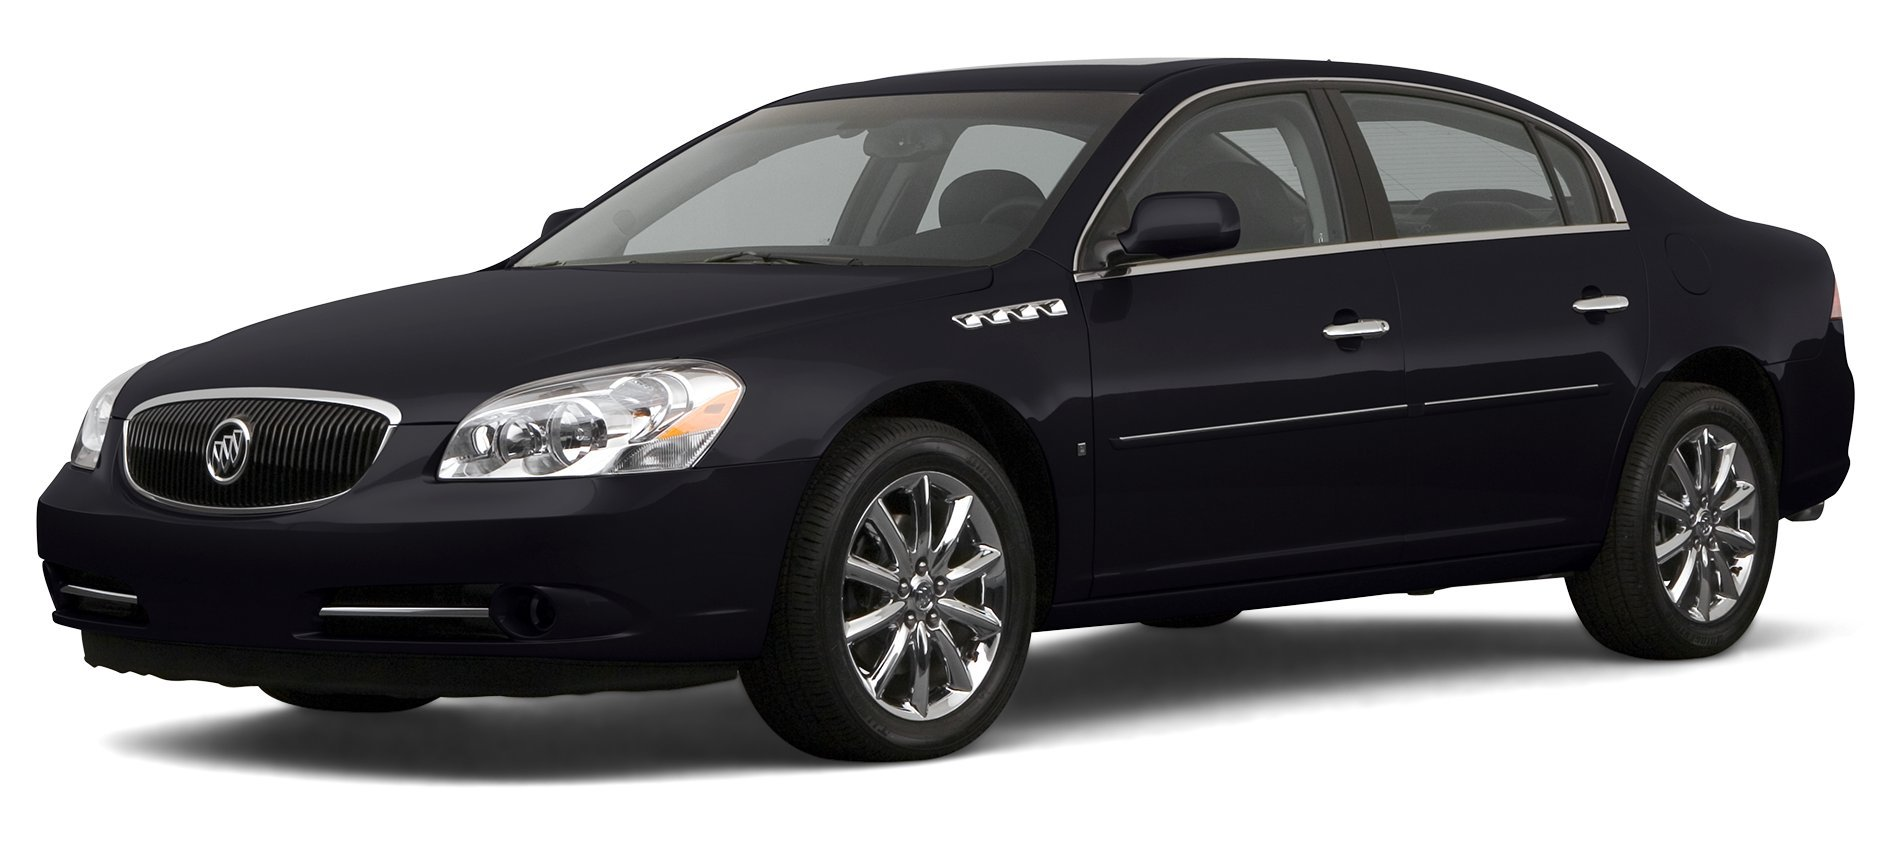 2006 Buick Lucerne Cxl >> Amazon.com: 2007 Buick Lucerne Reviews, Images, and Specs: Vehicles